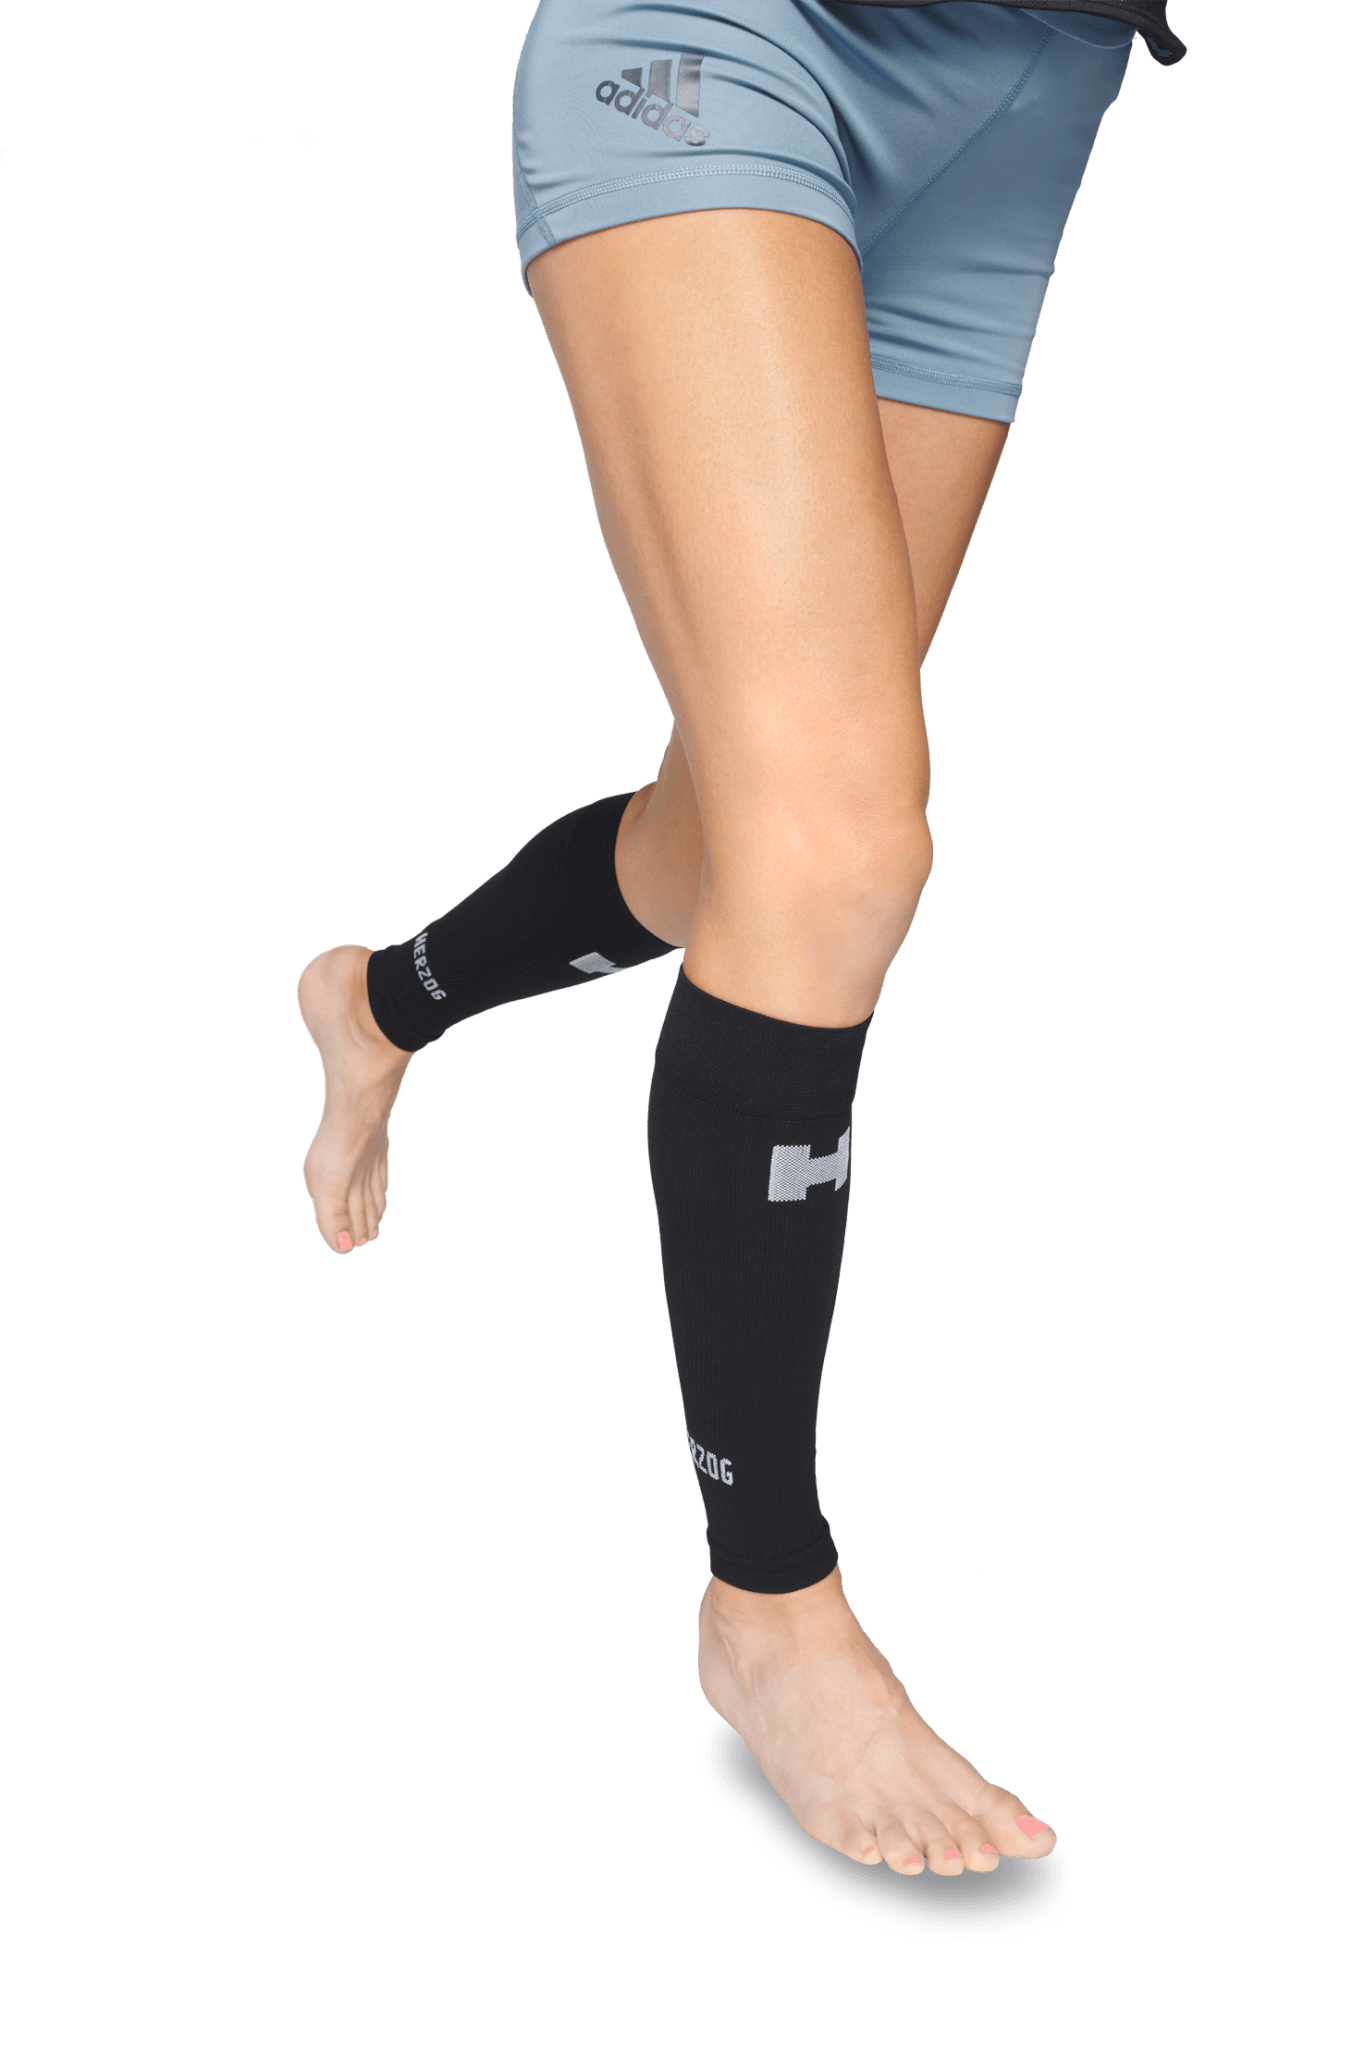 Herzog Medical Pro Socks